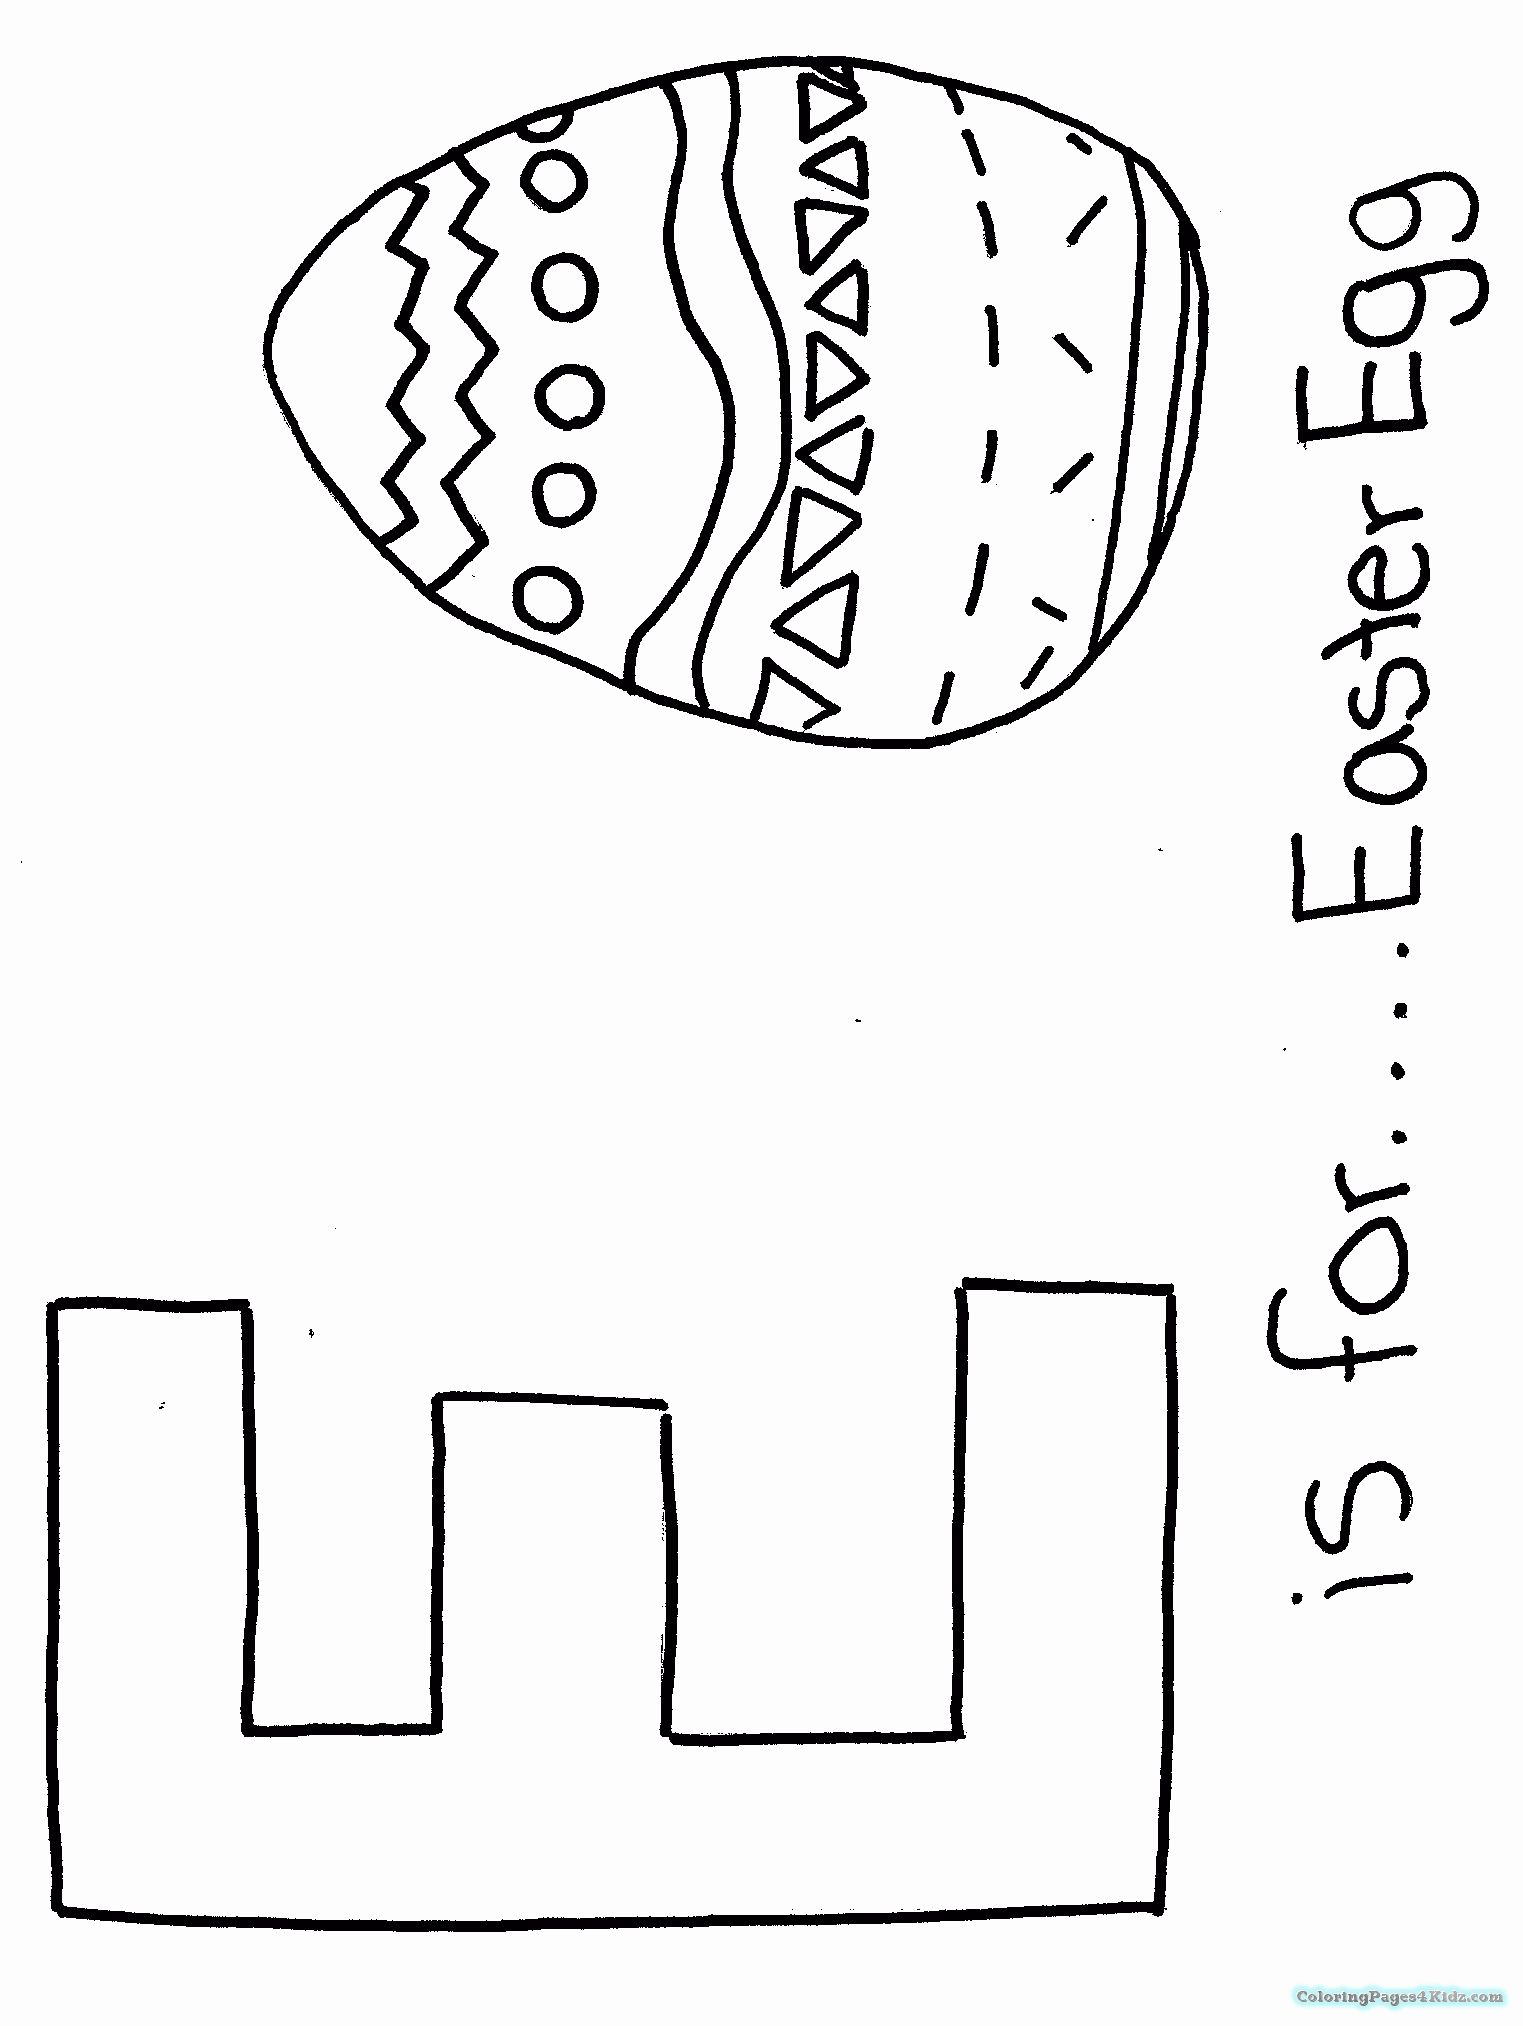 Letter E Coloring Sheets In